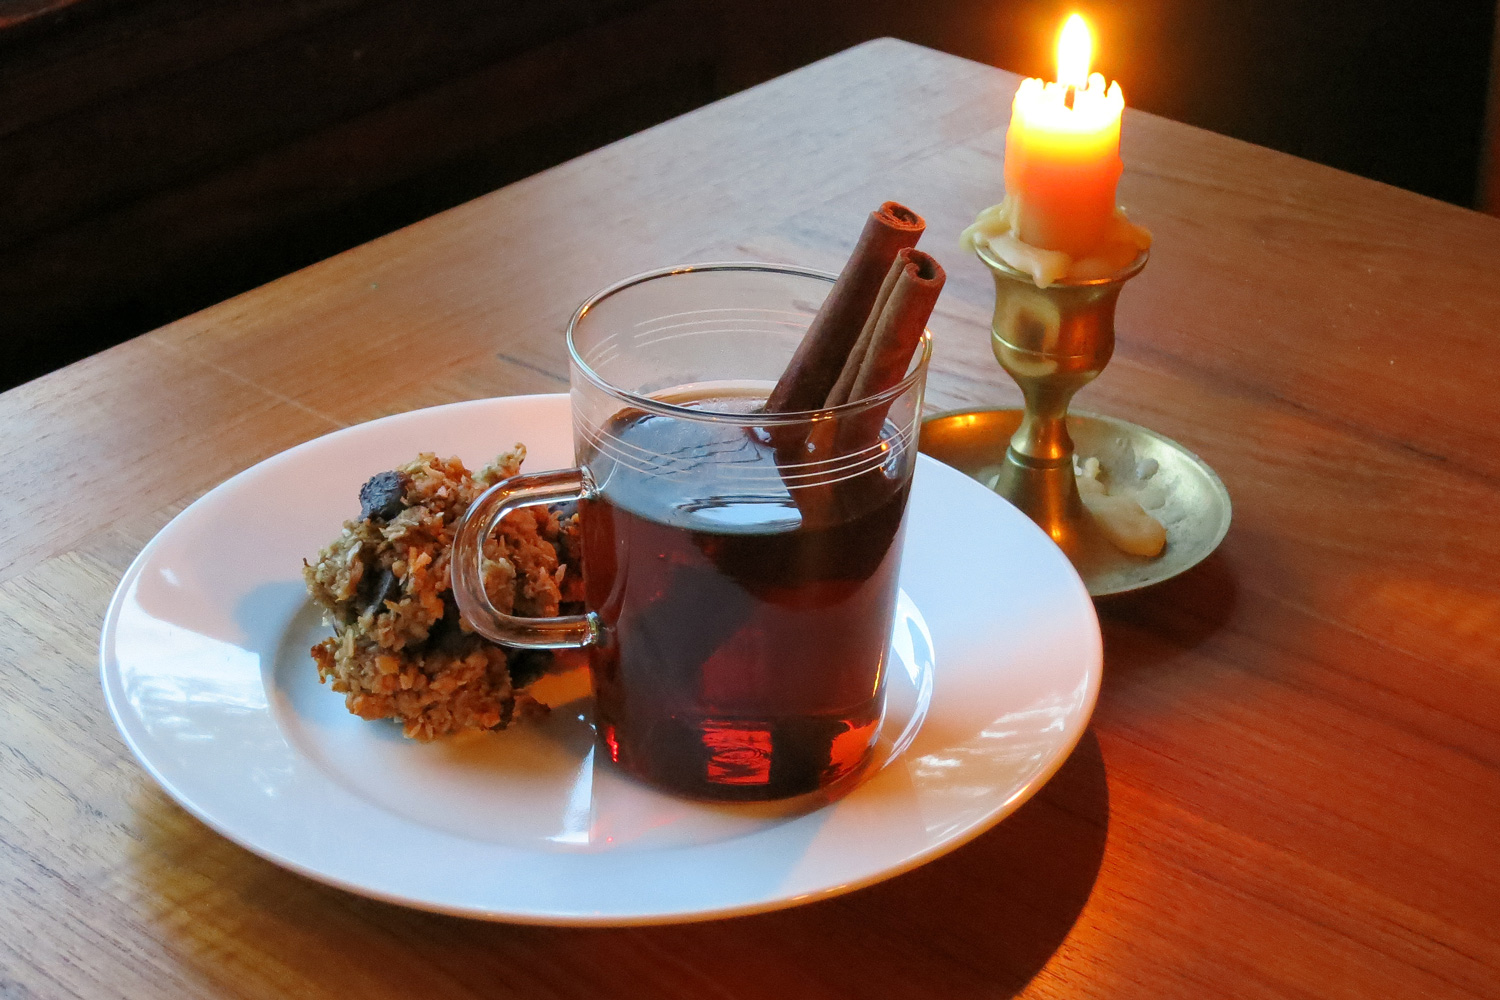 Mug of Mulled Vya winter cocktail with cinnamon sticks, next to a pastry and lit candle.